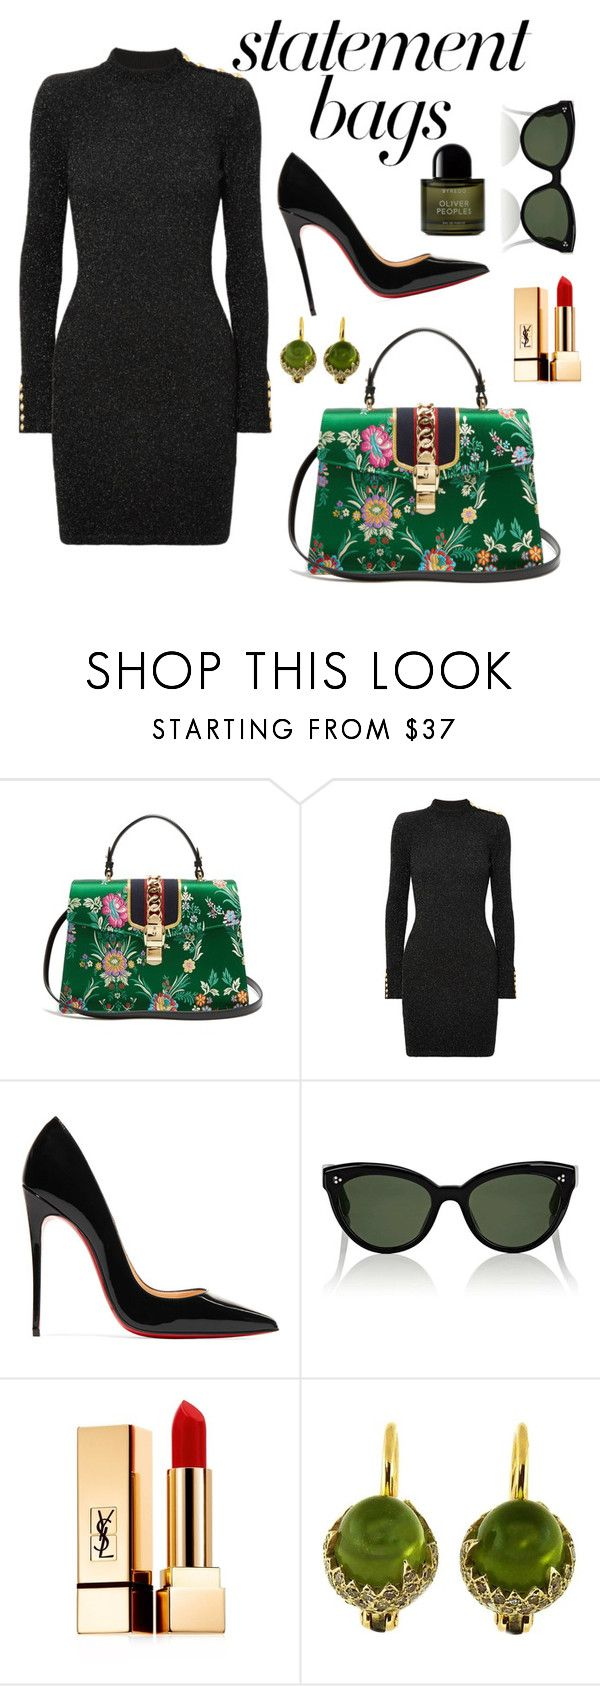 """Untitled #391"" by gissela540 ❤ liked on Polyvore featuring Gucci, Balmain, Christian Louboutin, Oliver Peoples, Yves Saint Laurent, Pomellato, Byredo and statementbags"